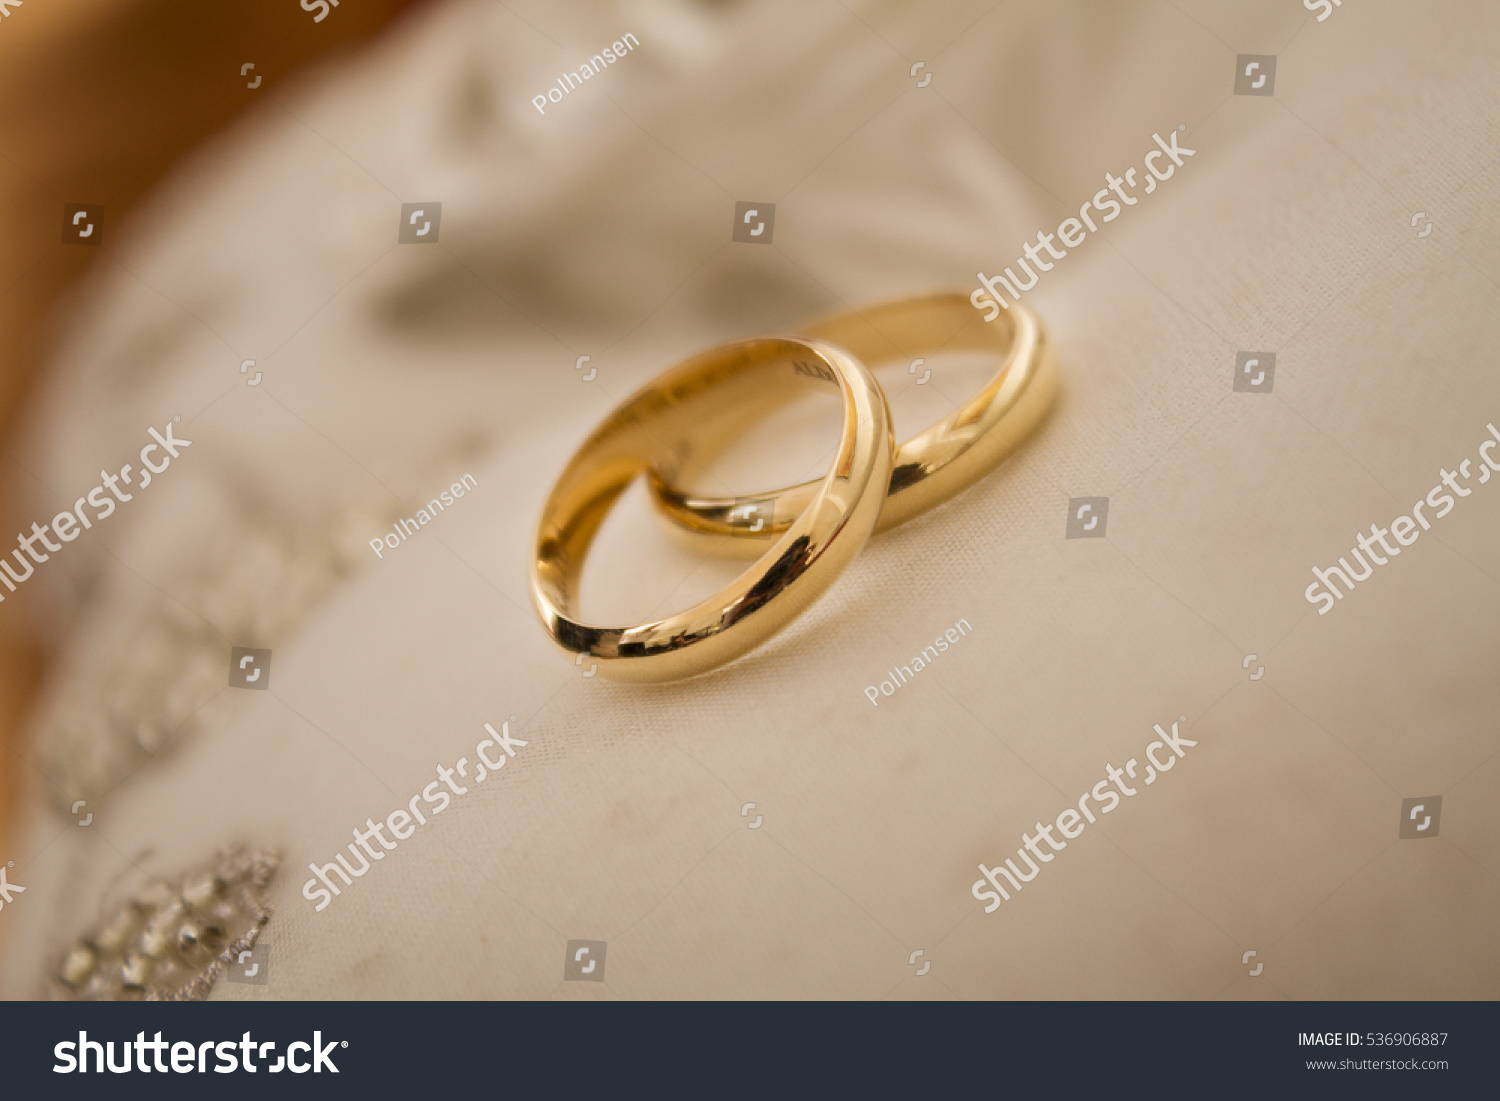 Gold Wedding Rings On A White Cloth Ez Canvas